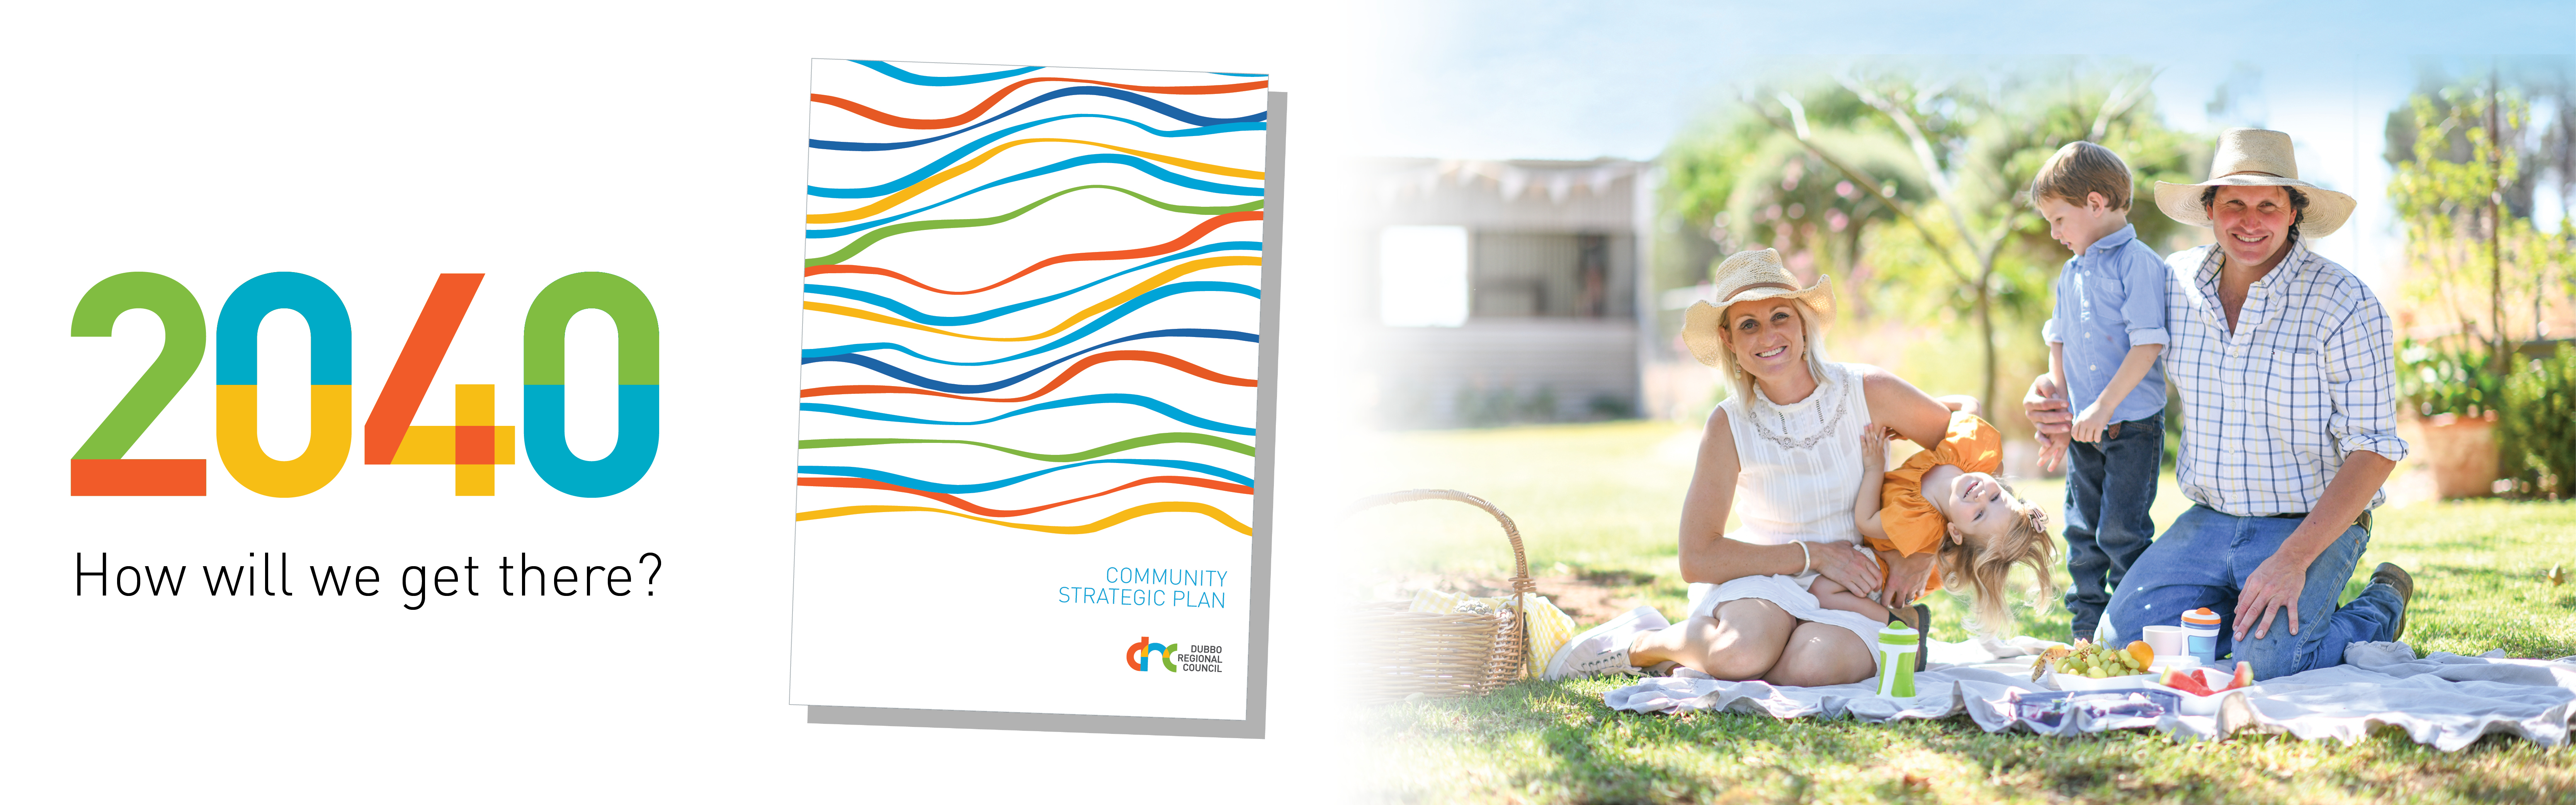 You spoke, we listened. View the first adopted Community Strategic Plan for the Dubbo Regional Council